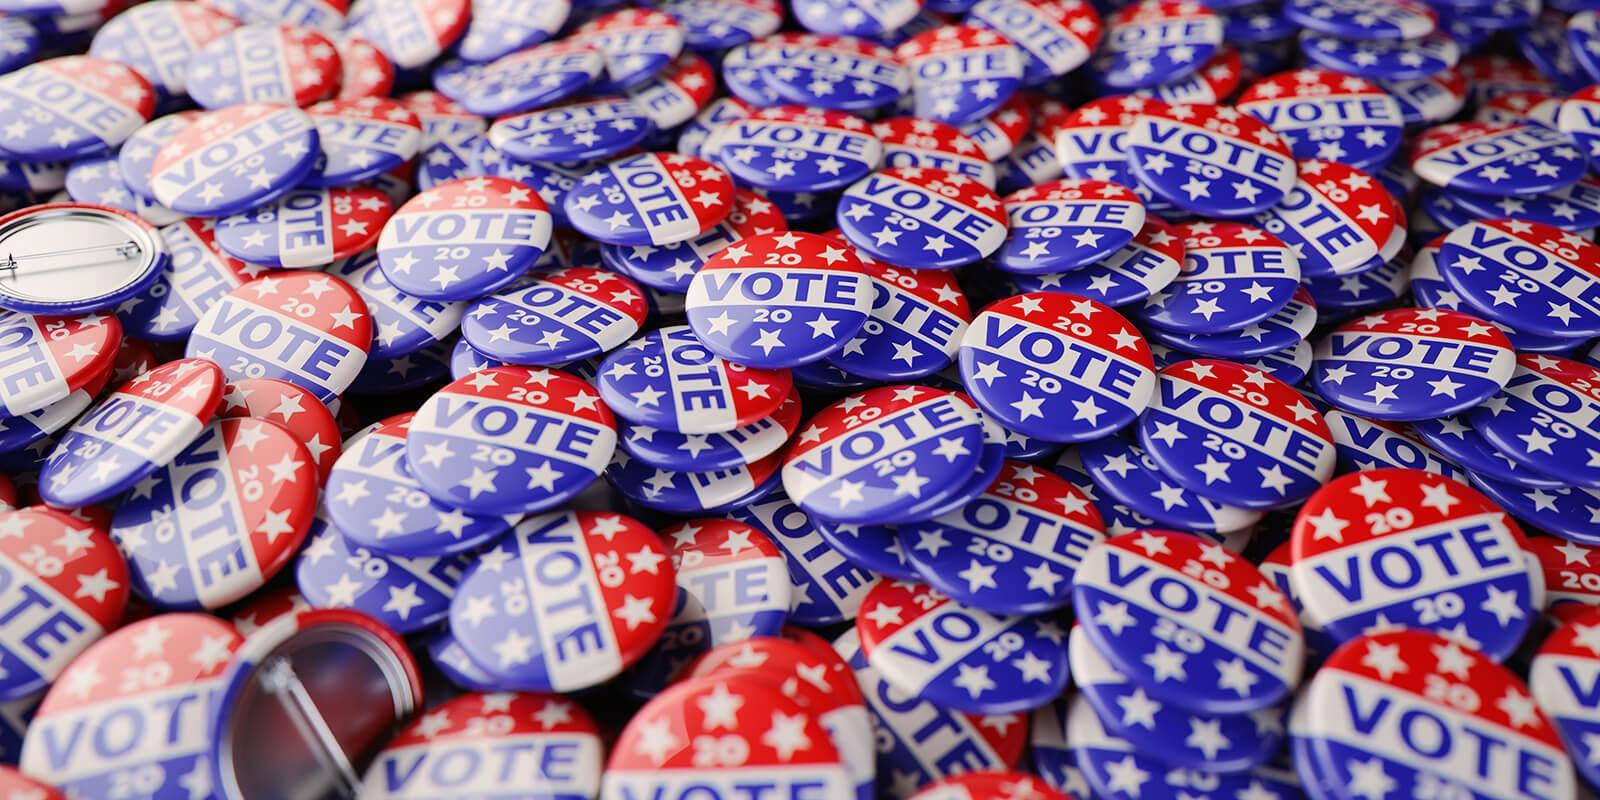 Voting buttons